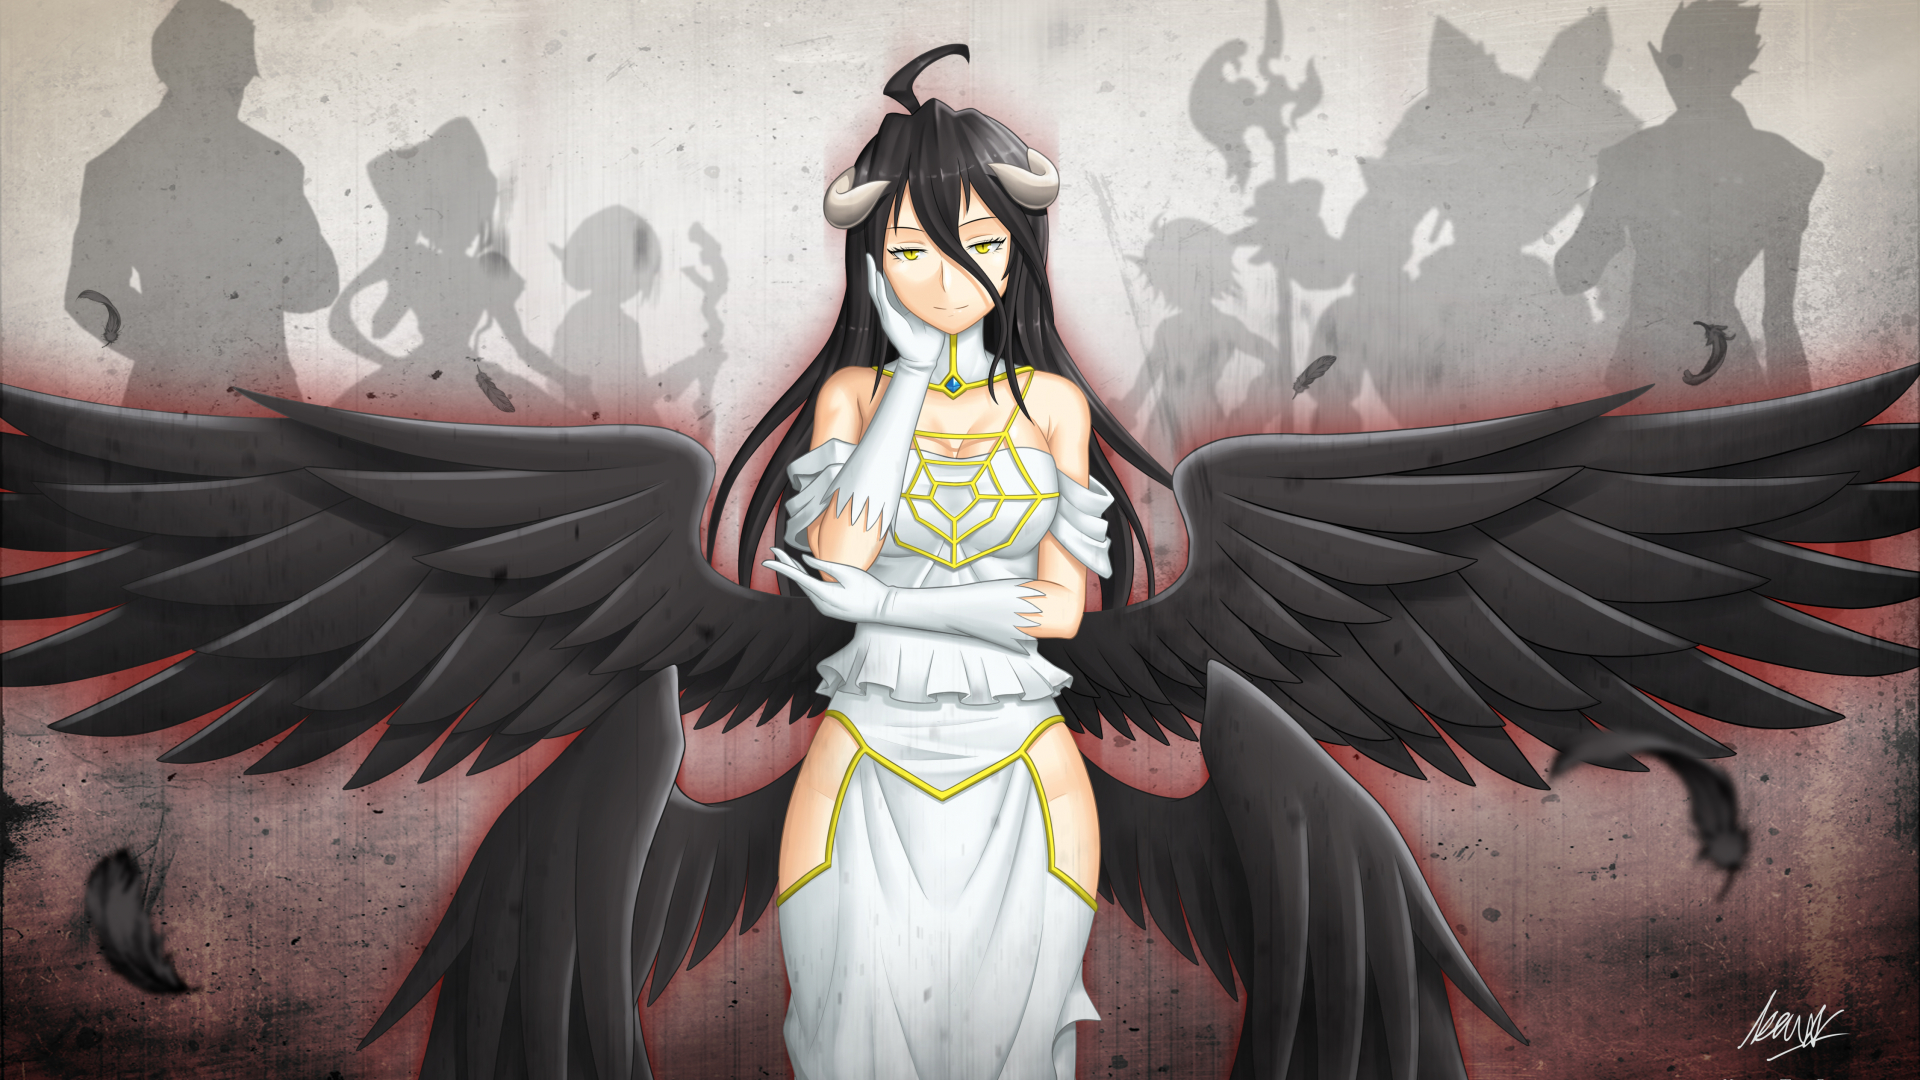 Free Download Anime Overlord Overlord Demiurge Cocytus Mare Bello Fiore Aura Bella 4492x2713 For Your Desktop Mobile Tablet Explore 49 Overlord Anime Albedo Wallpaper Overlord Anime Albedo Wallpaper Overlord